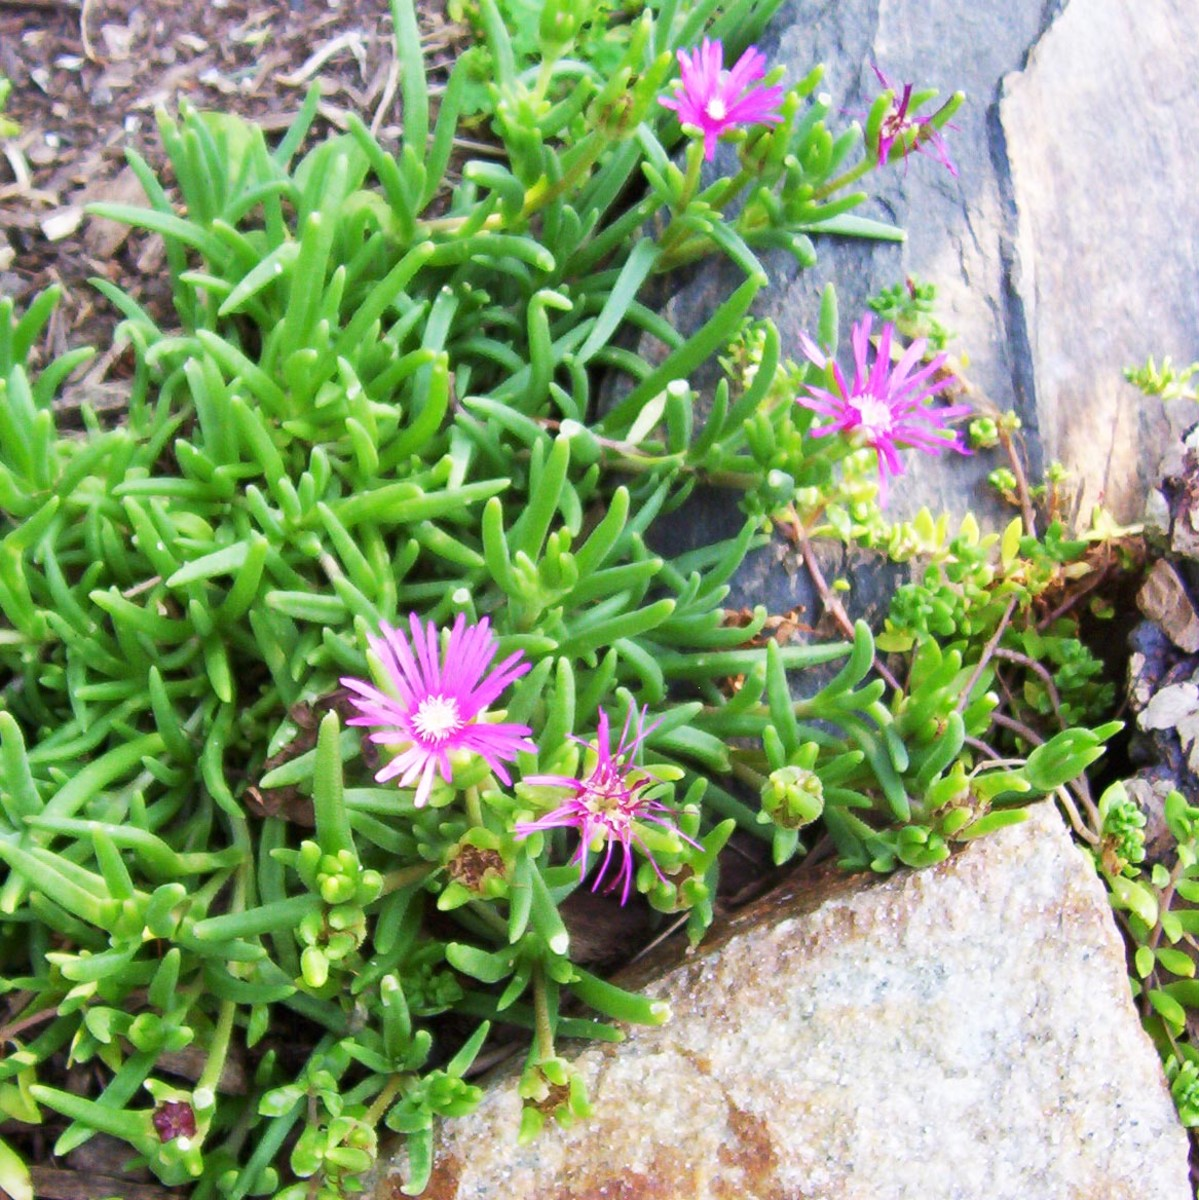 Ice plant or sedum (photo by Dolores Monet)